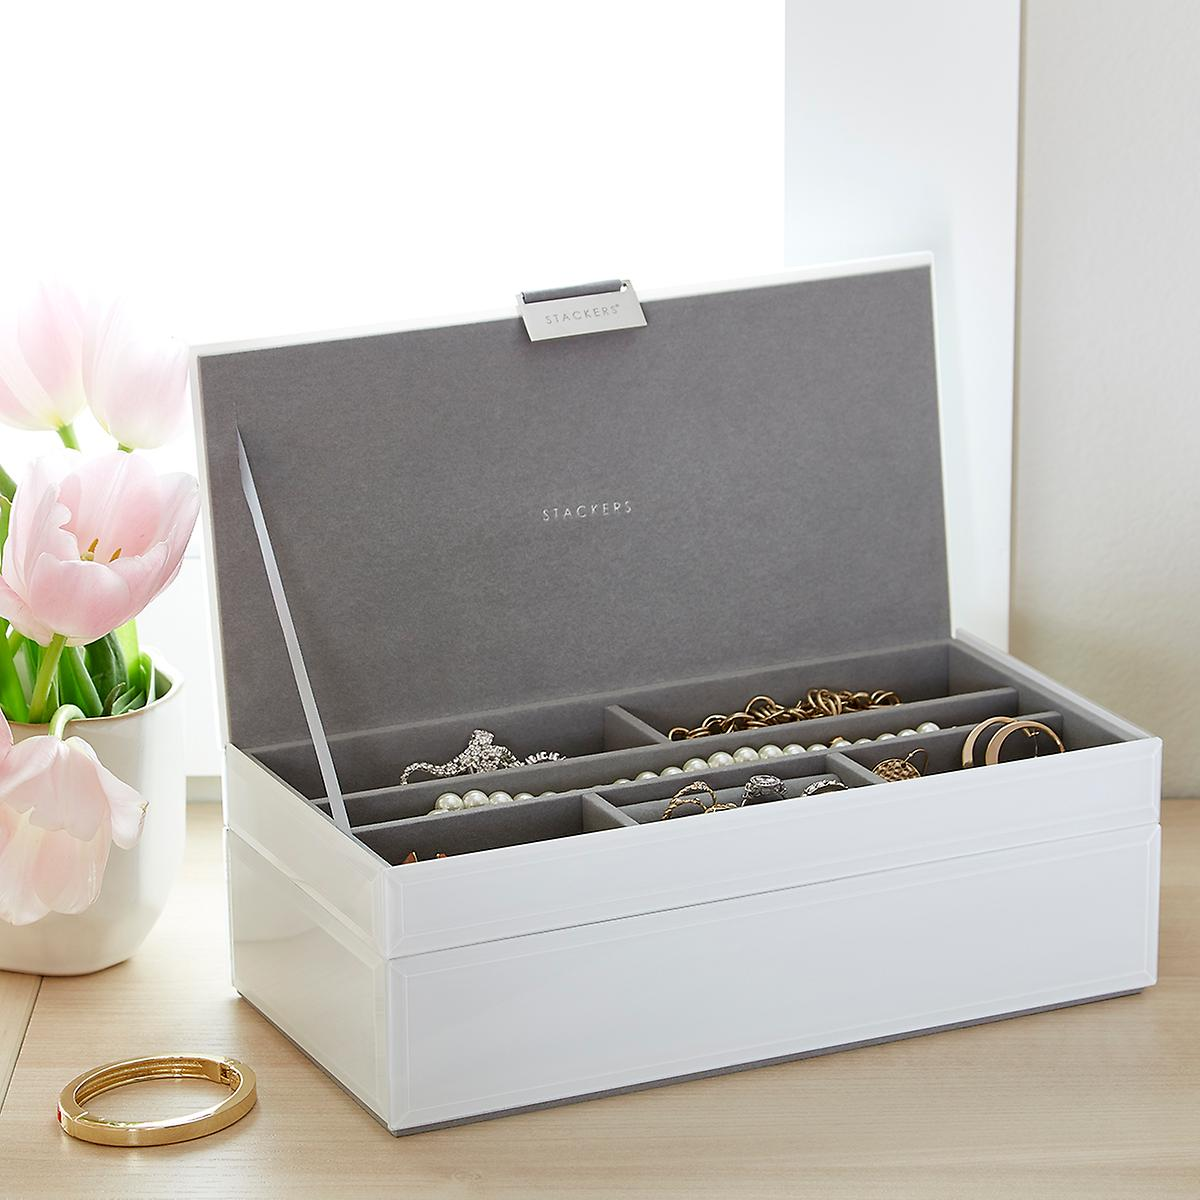 bd33116e38ec White Glass Stackers Jewelry Box | The Container Store